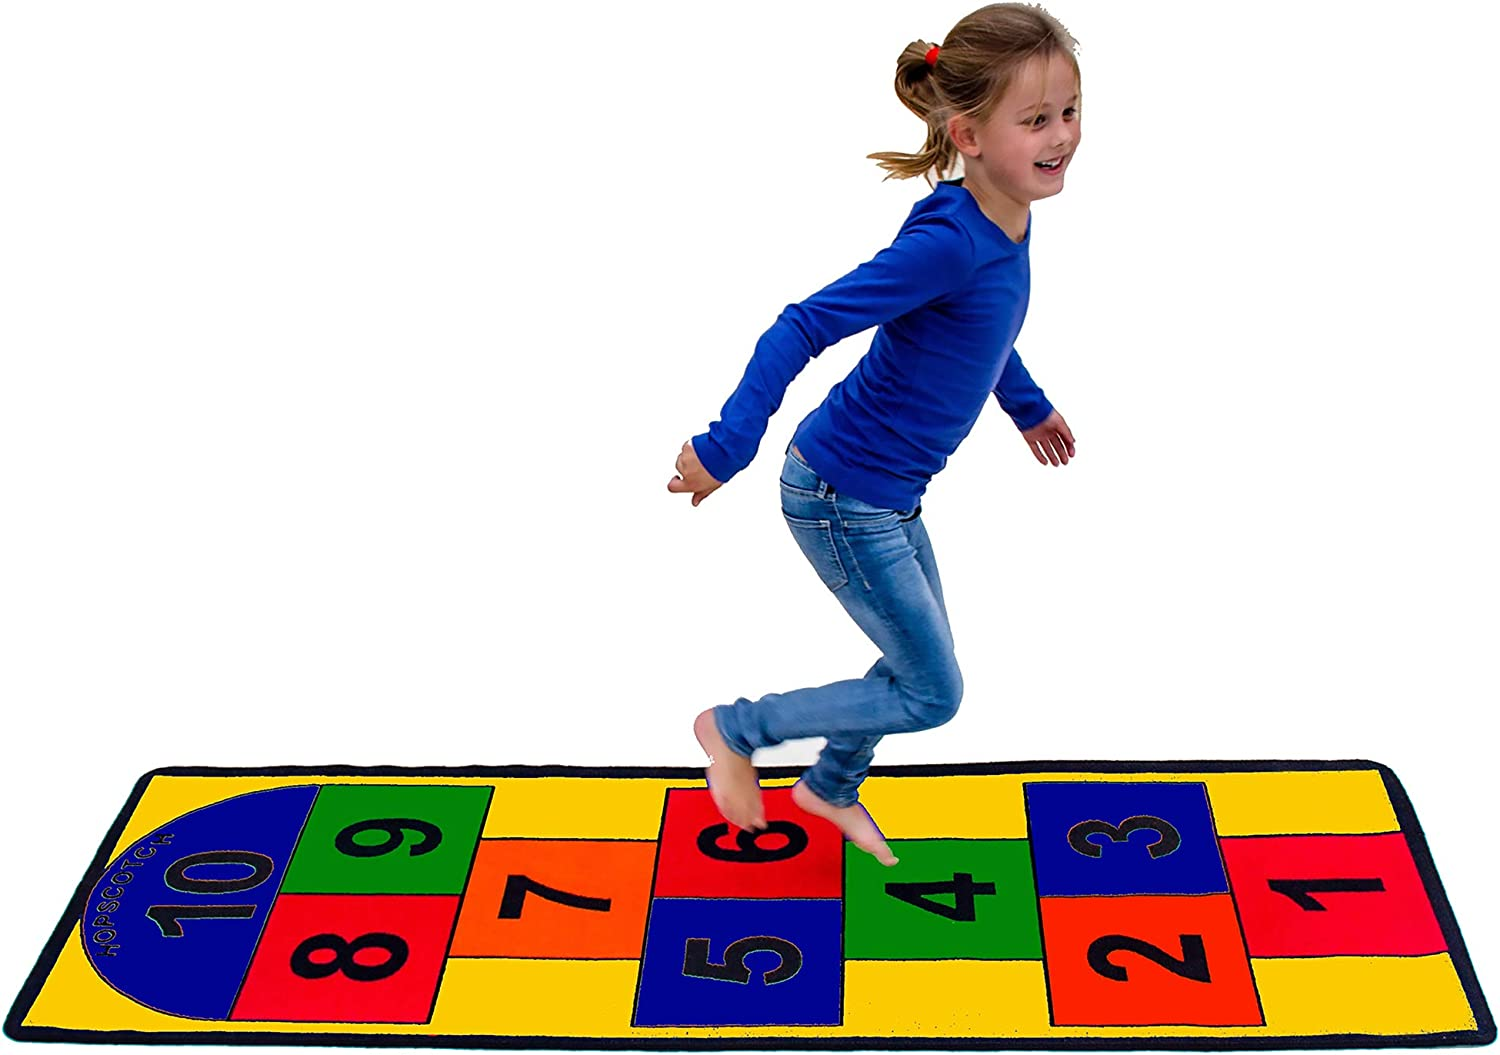 28/×55 in,Green Kids Hopscotch Rug Educational Learning Carpet Kids Floor Play Mat Kids Indoor Outdoor Area Rug